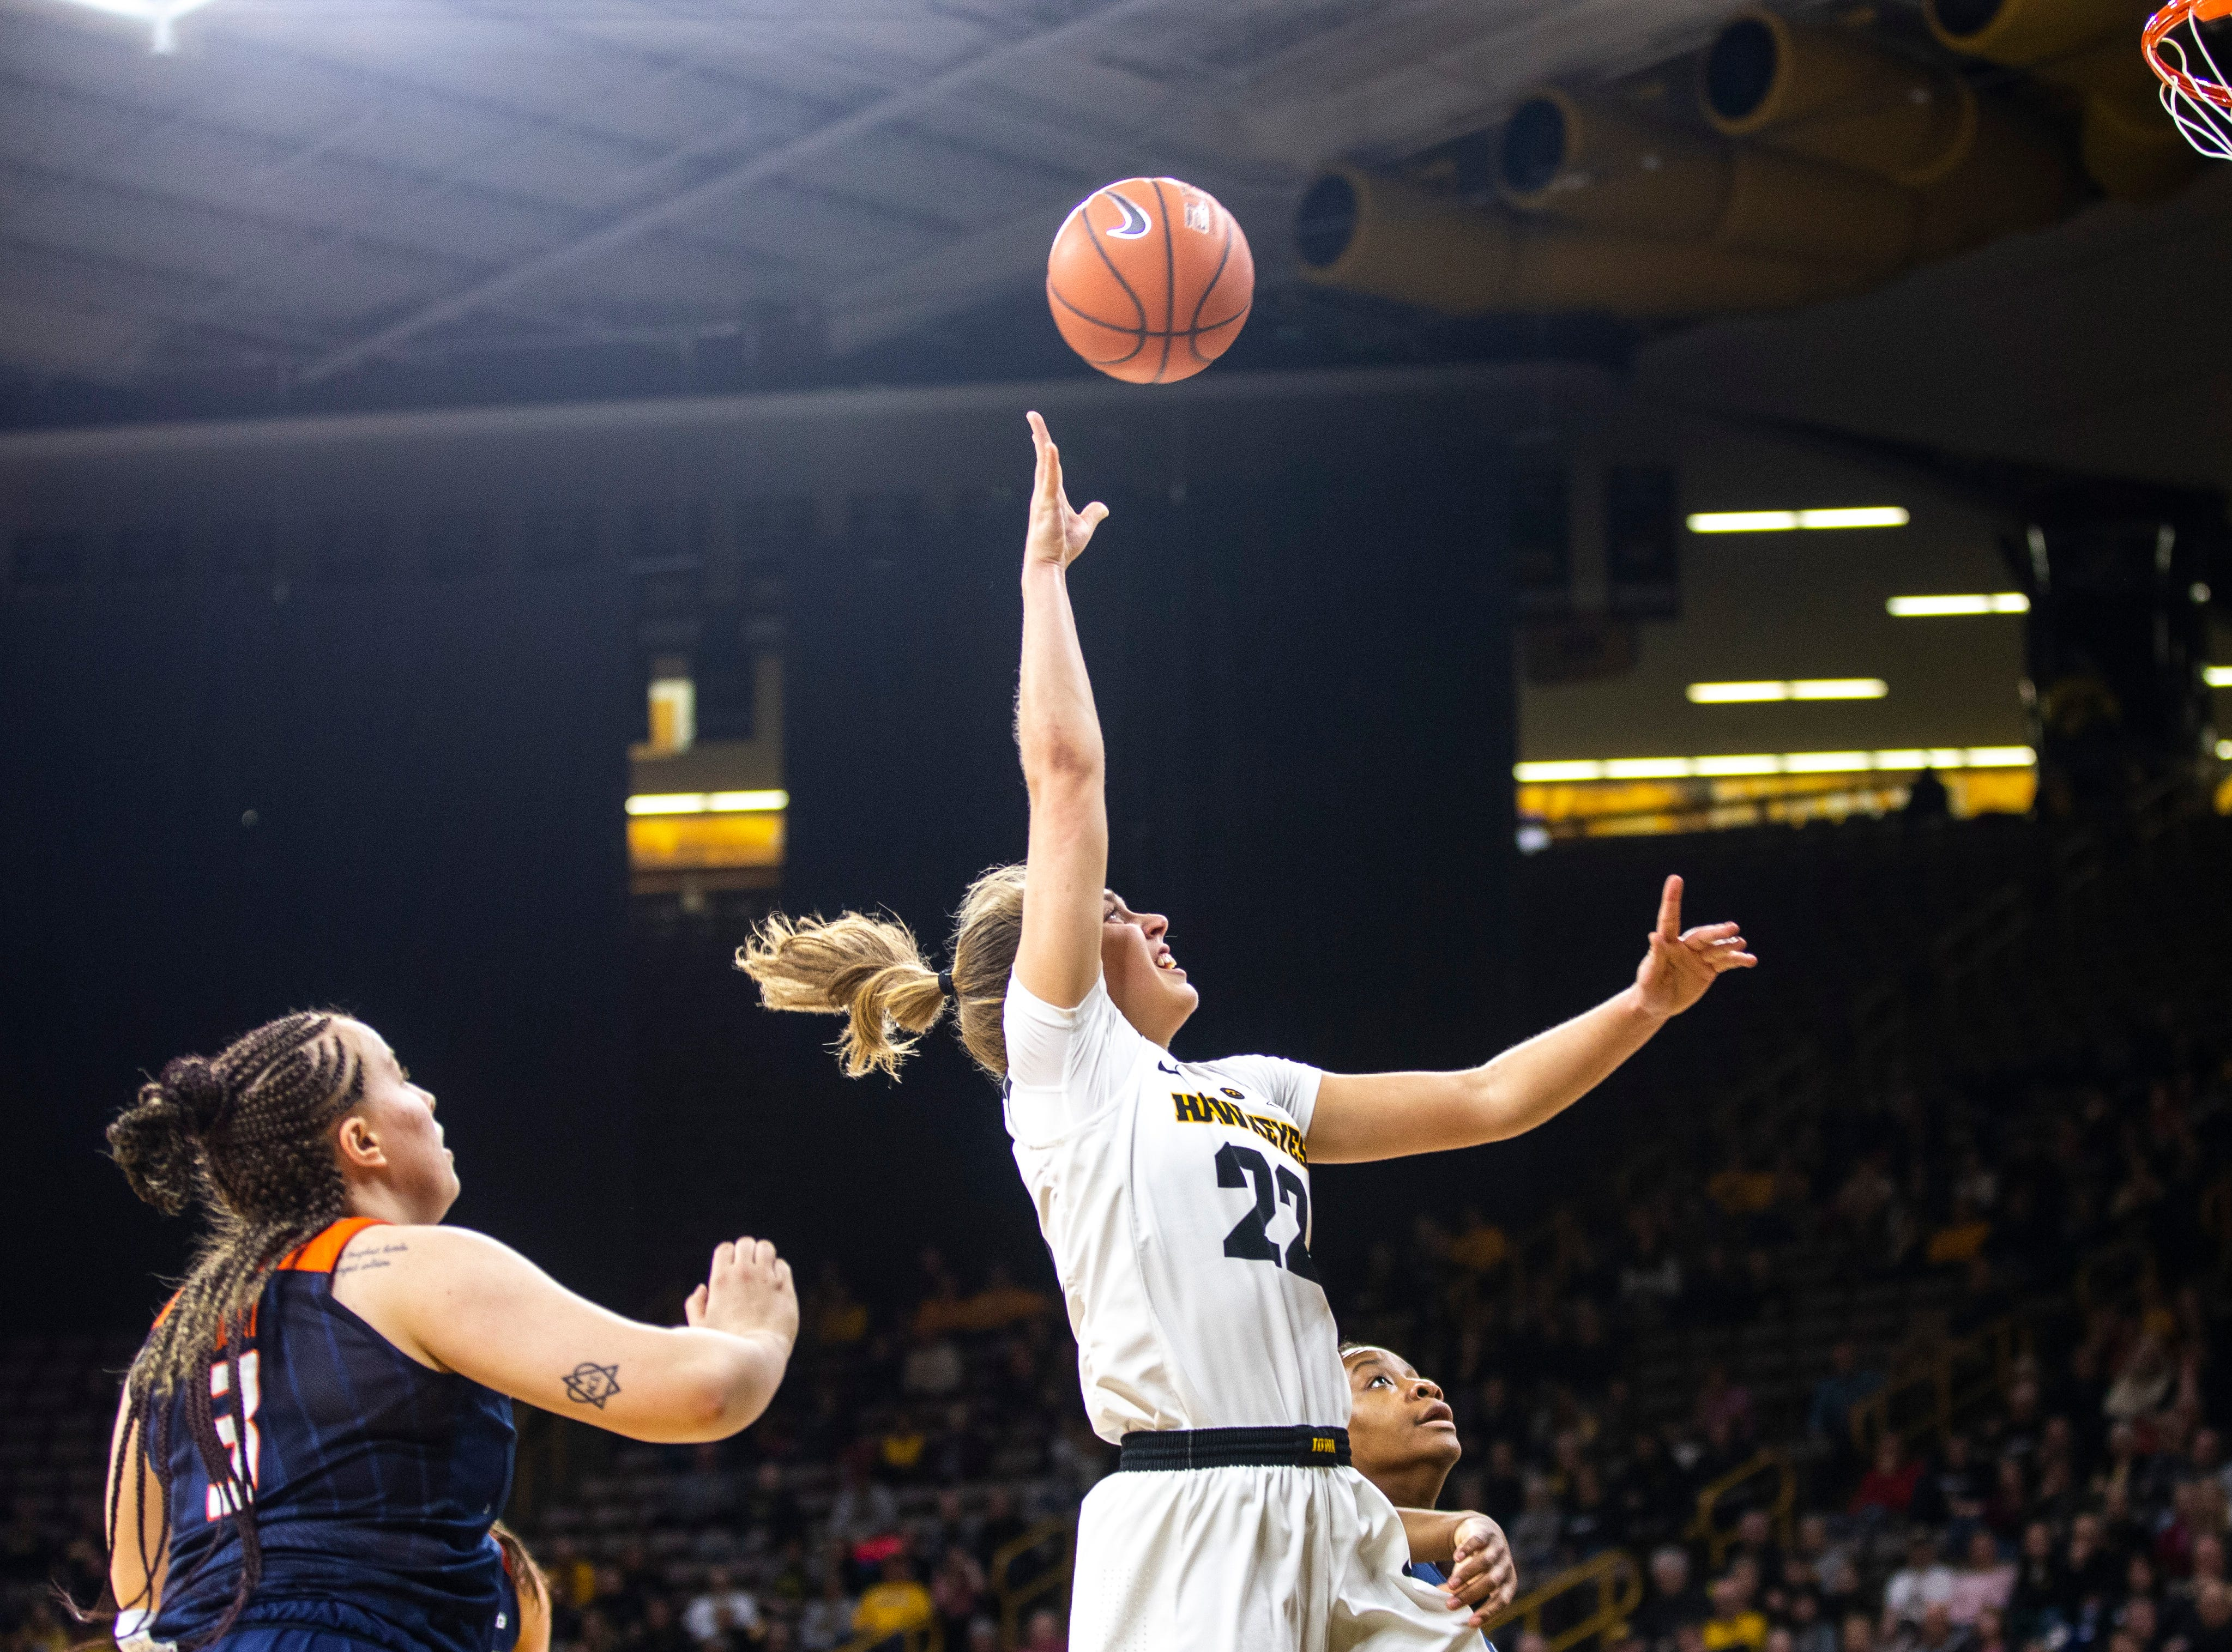 Iowa guard Kathleen Doyle (22) attempts a basket while Illinois guard Arieal Scott (3) defends during a NCAA Big Ten Conference women's basketball game on Thursday, Feb. 14, 2019 at Carver-Hawkeye Arena in Iowa City, Iowa.